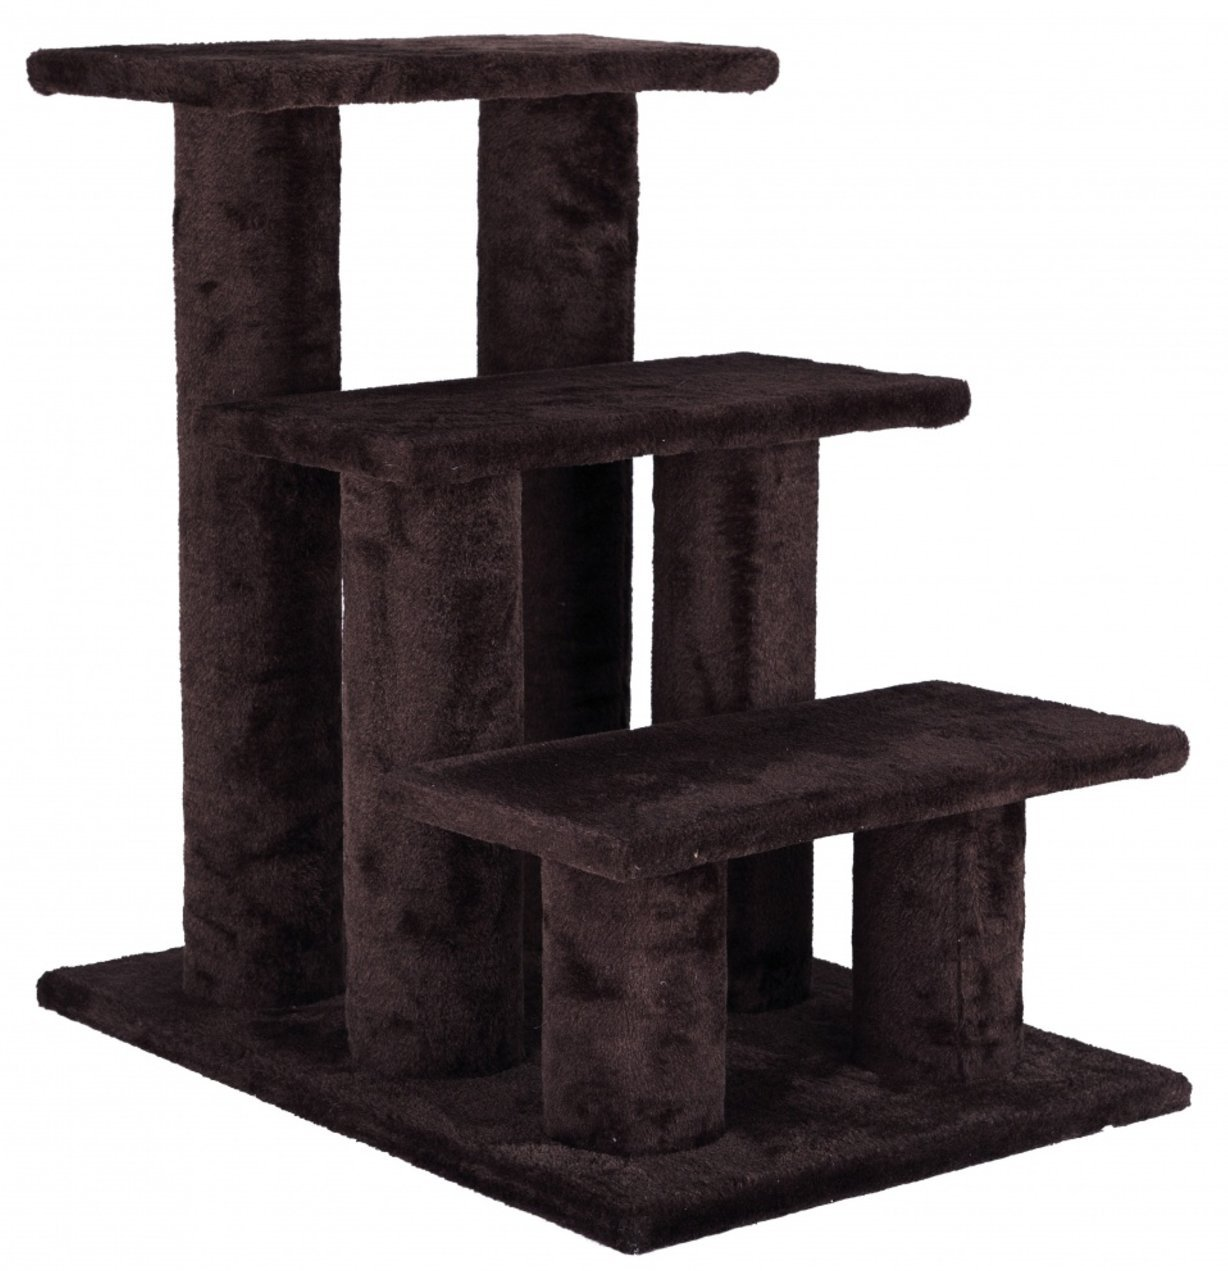 Trixie Pet Products Stairs, Brown by Trixie